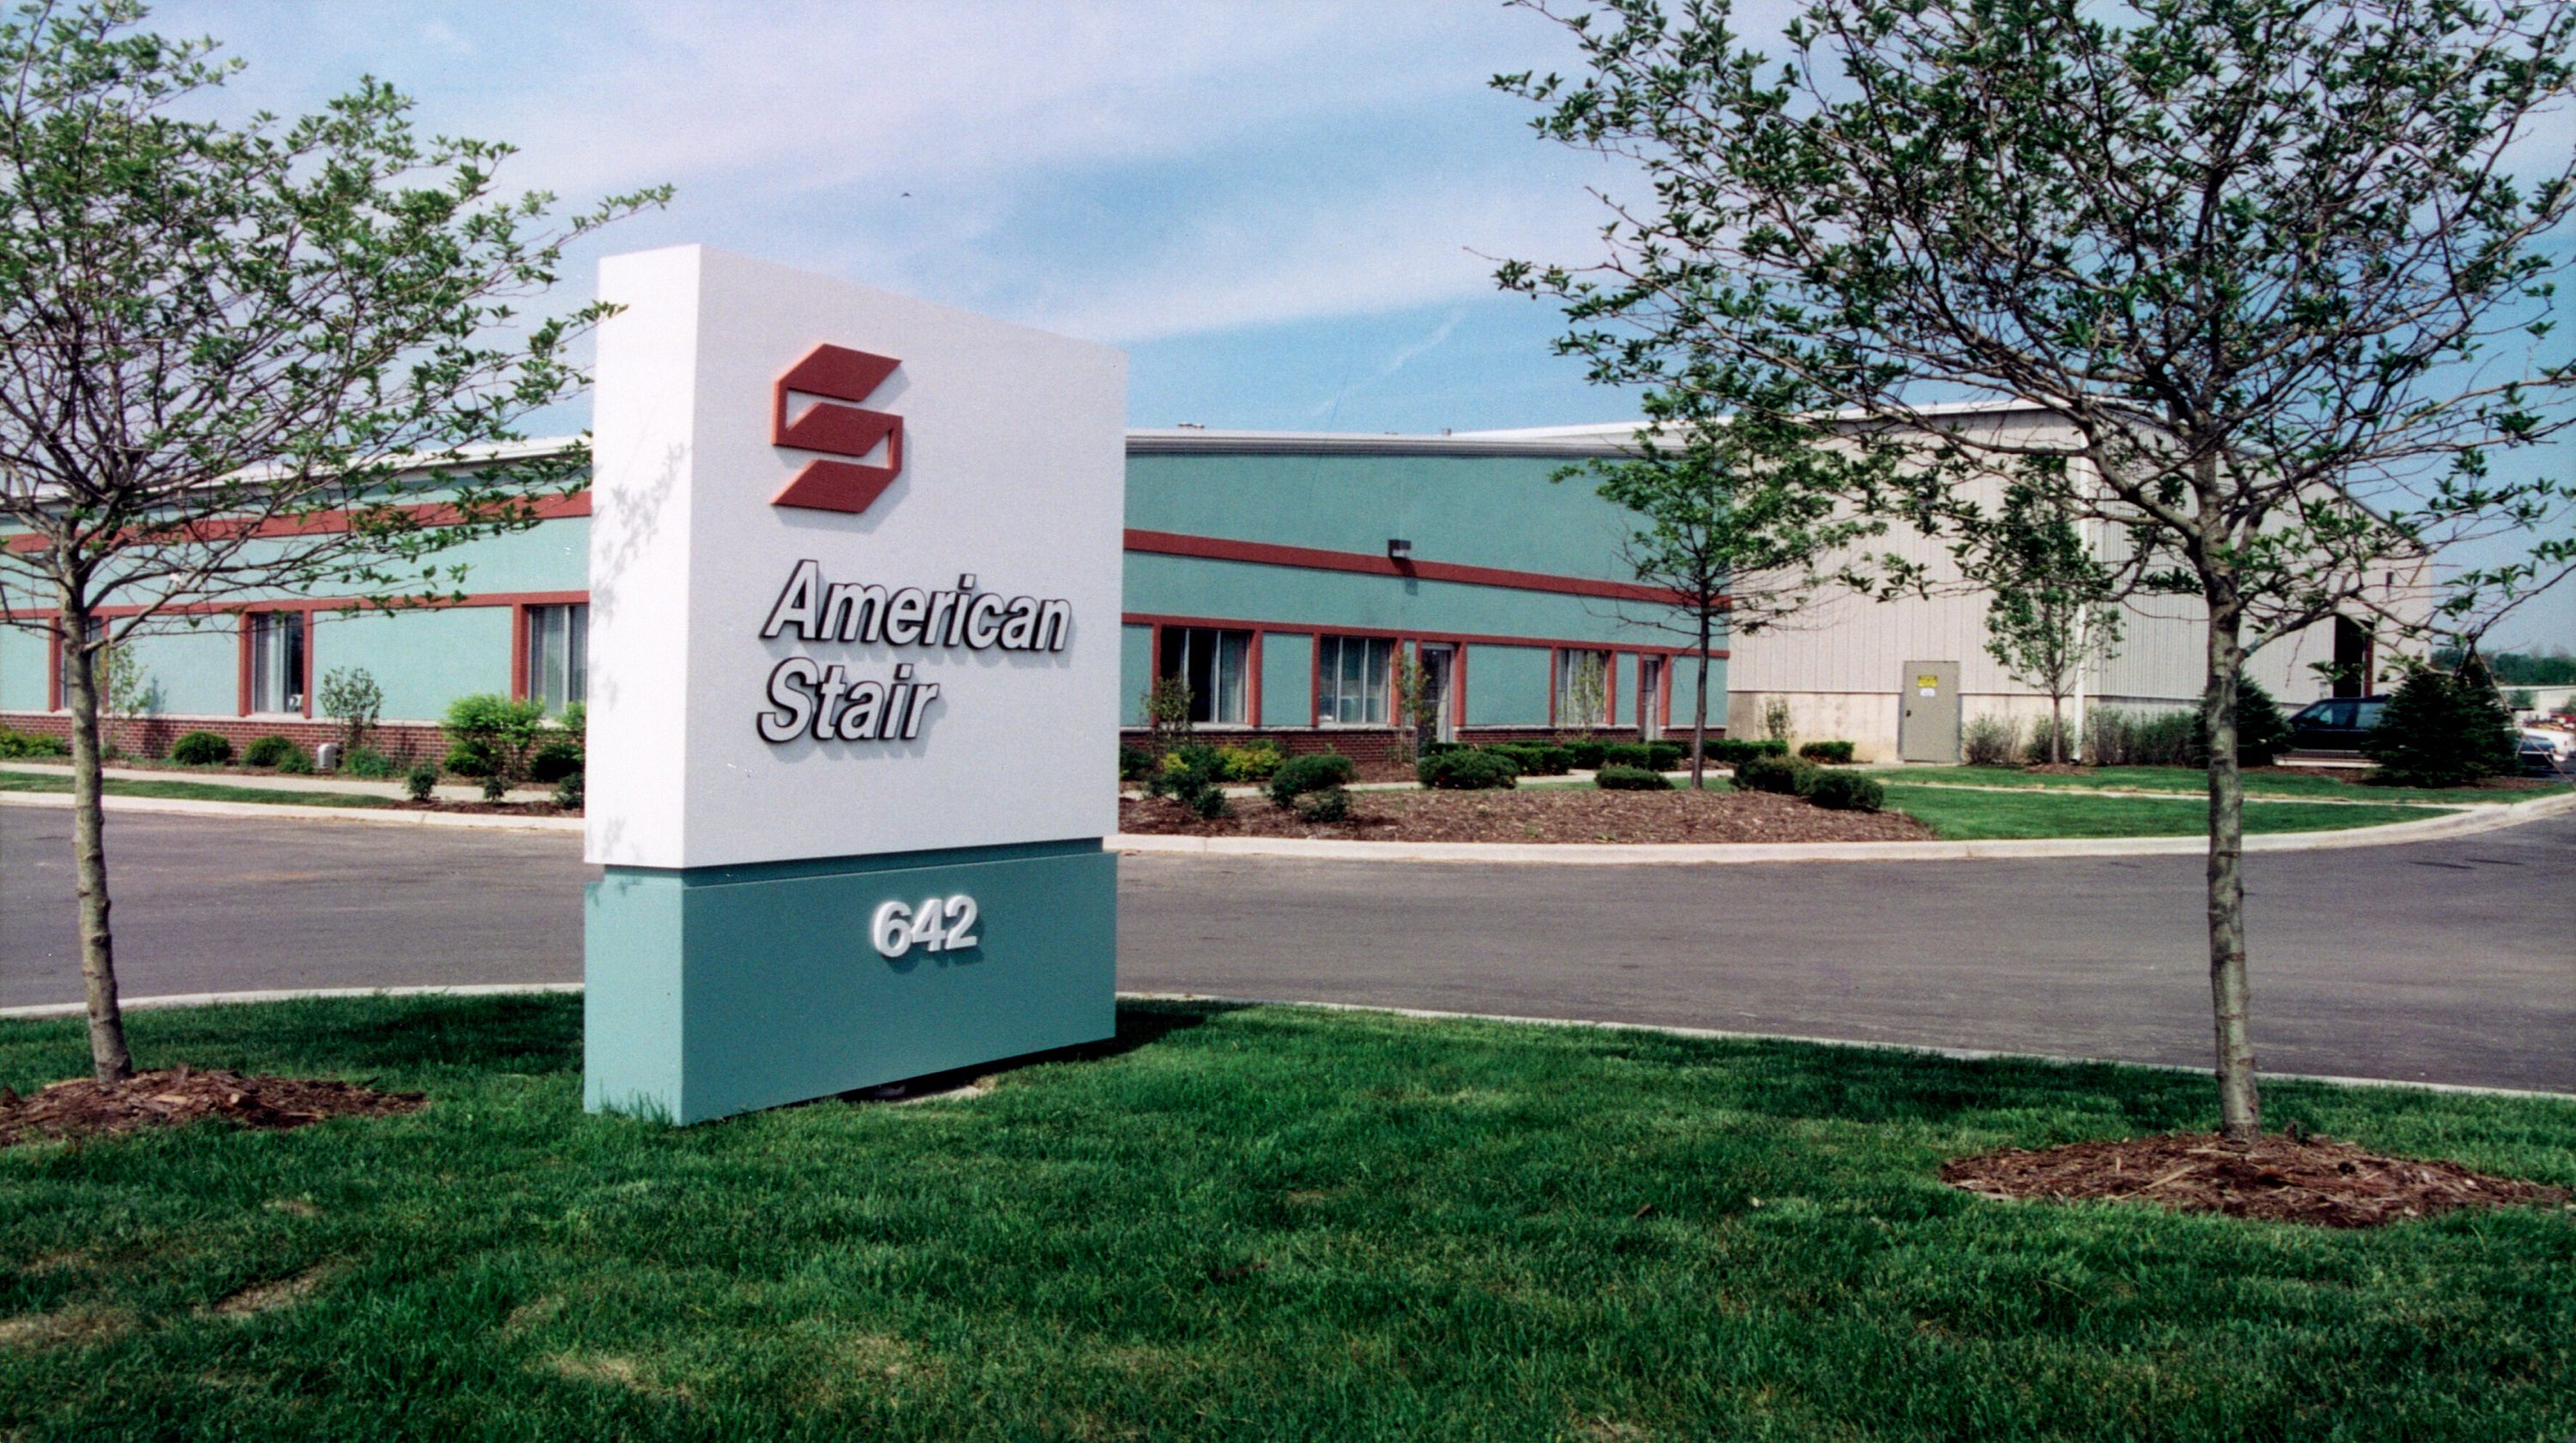 American Stair Is Quickly Renovating Its Newest 100,000 Sq. Ft. Building  And Soon Will Be Front And Center On Calumet Avenue In Hammond, Indiana.